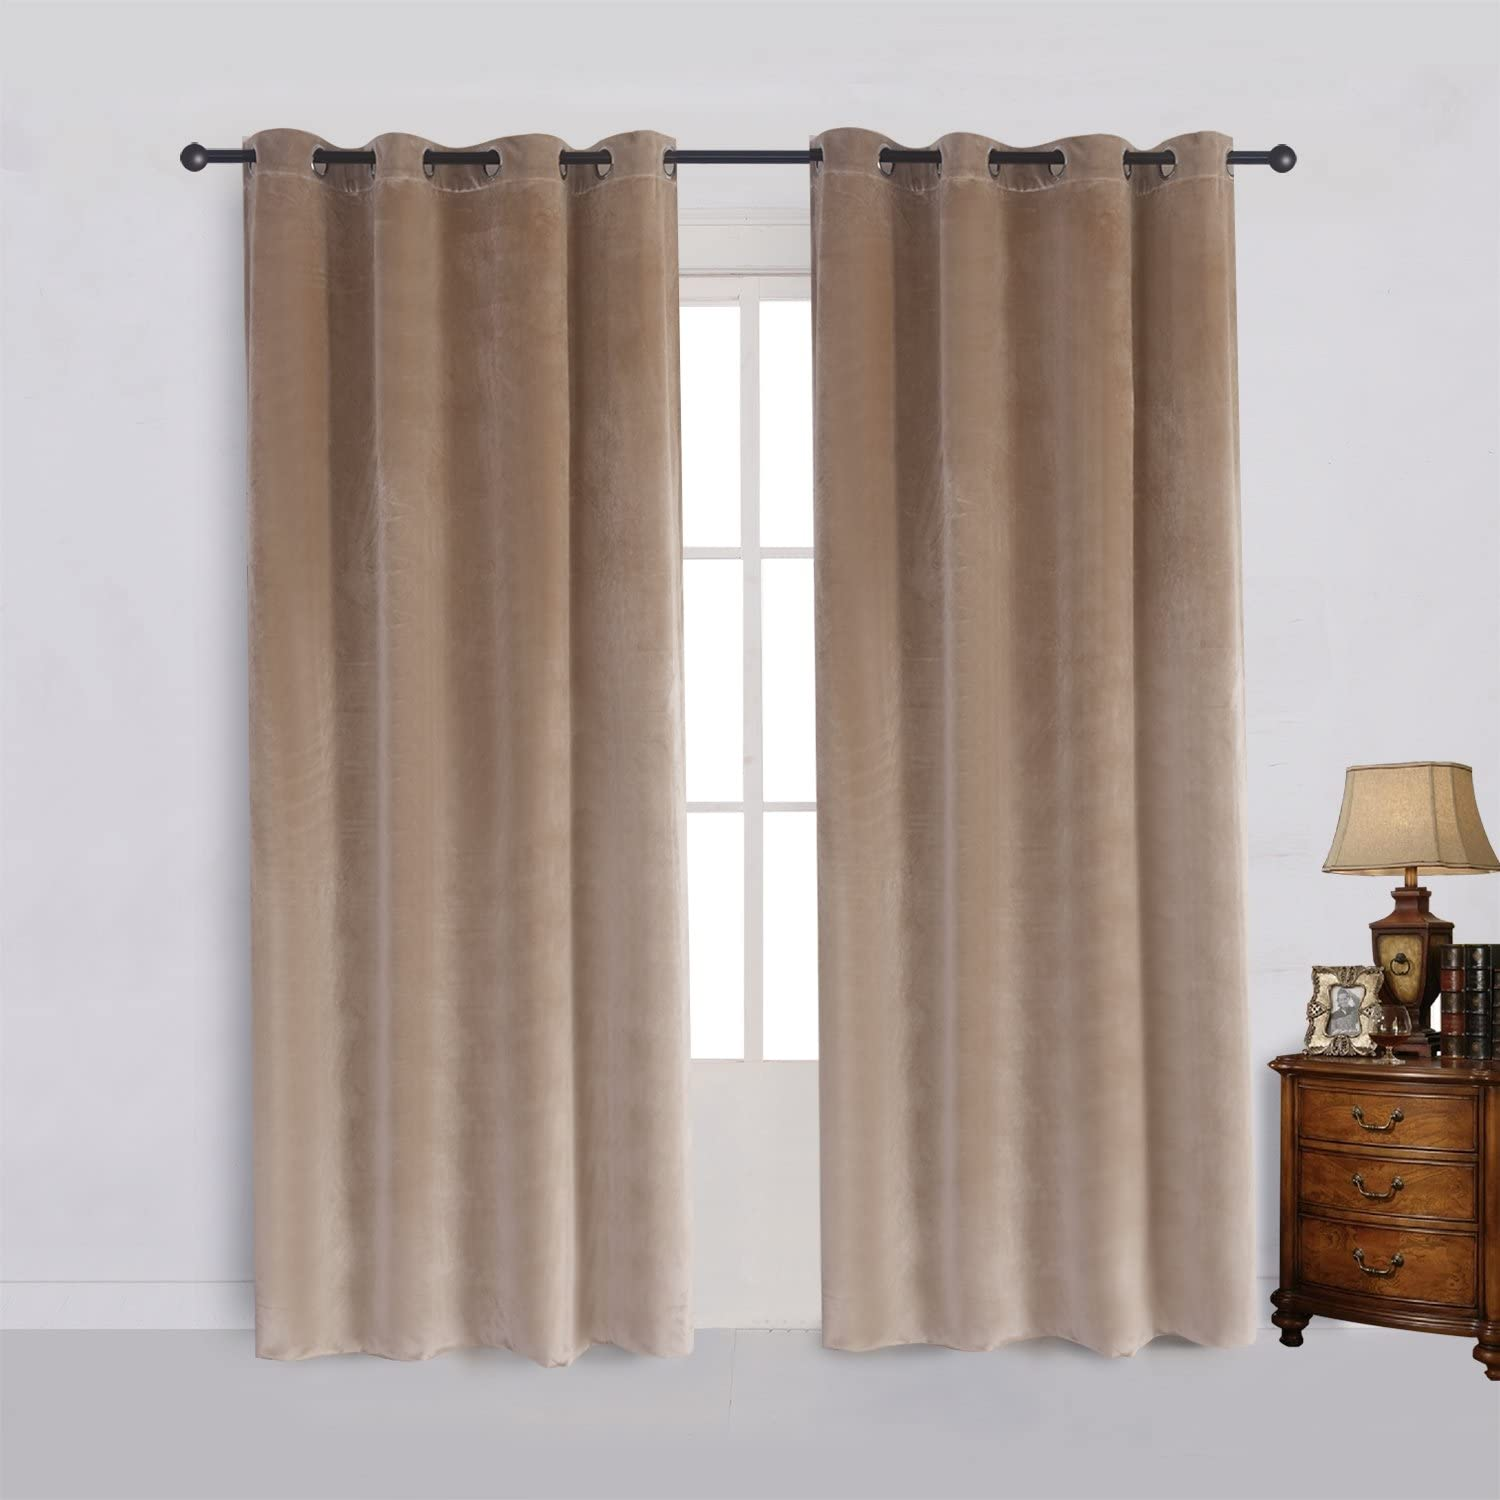 Cherry Home Super Soft Luxury Velvet Curtains Set of 2 Sand Color Room Darkening Blackout Drapes Drapery Cream 52 Inch Wide by 84 Inch Length with Grommet Sand(2 Panels) with Tiebacks